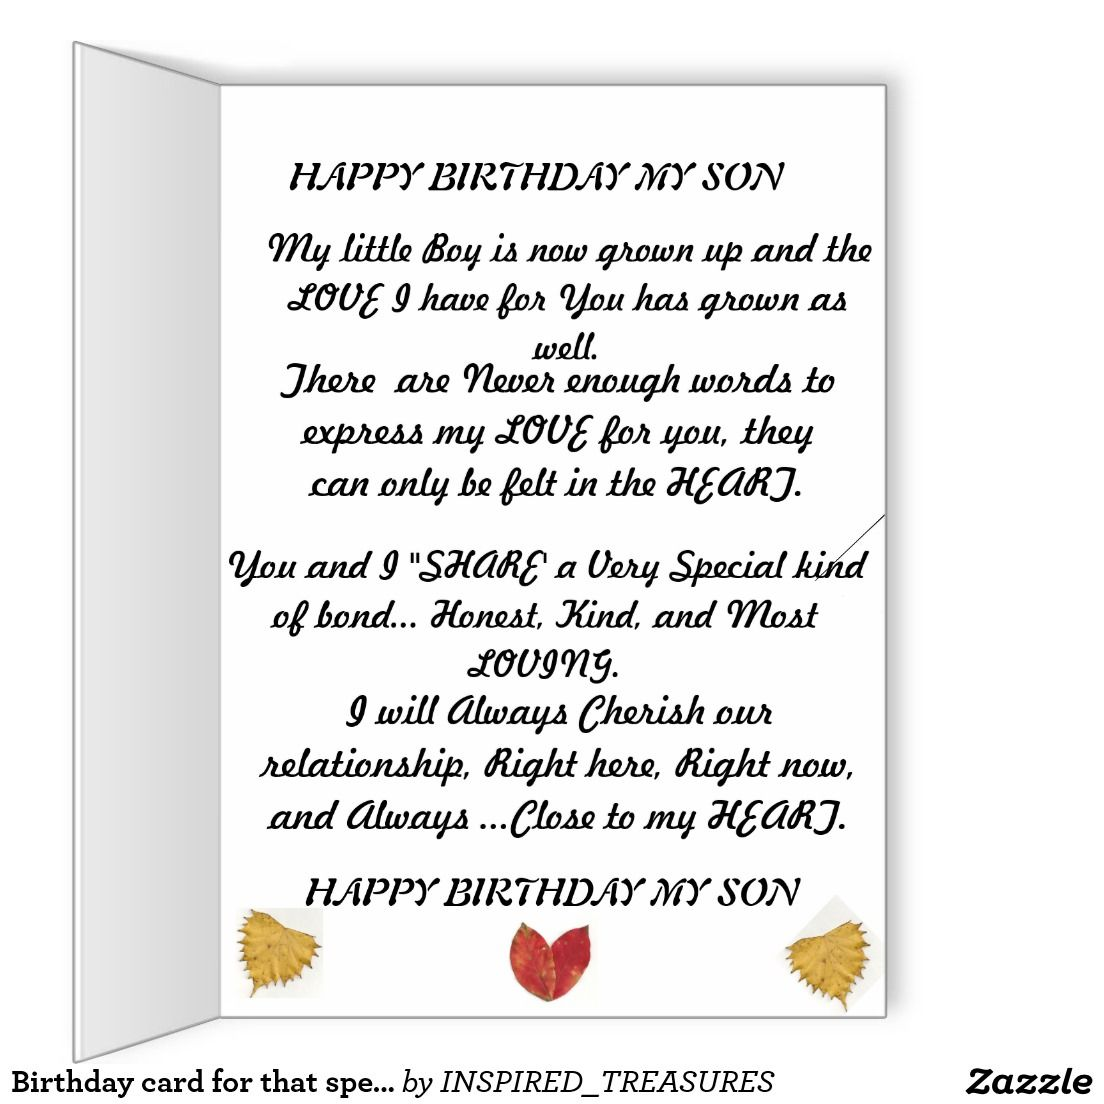 Birthday Card For That Special Son Zazzle Com Birthday Cards Birthday Cards For Son Birthday Words